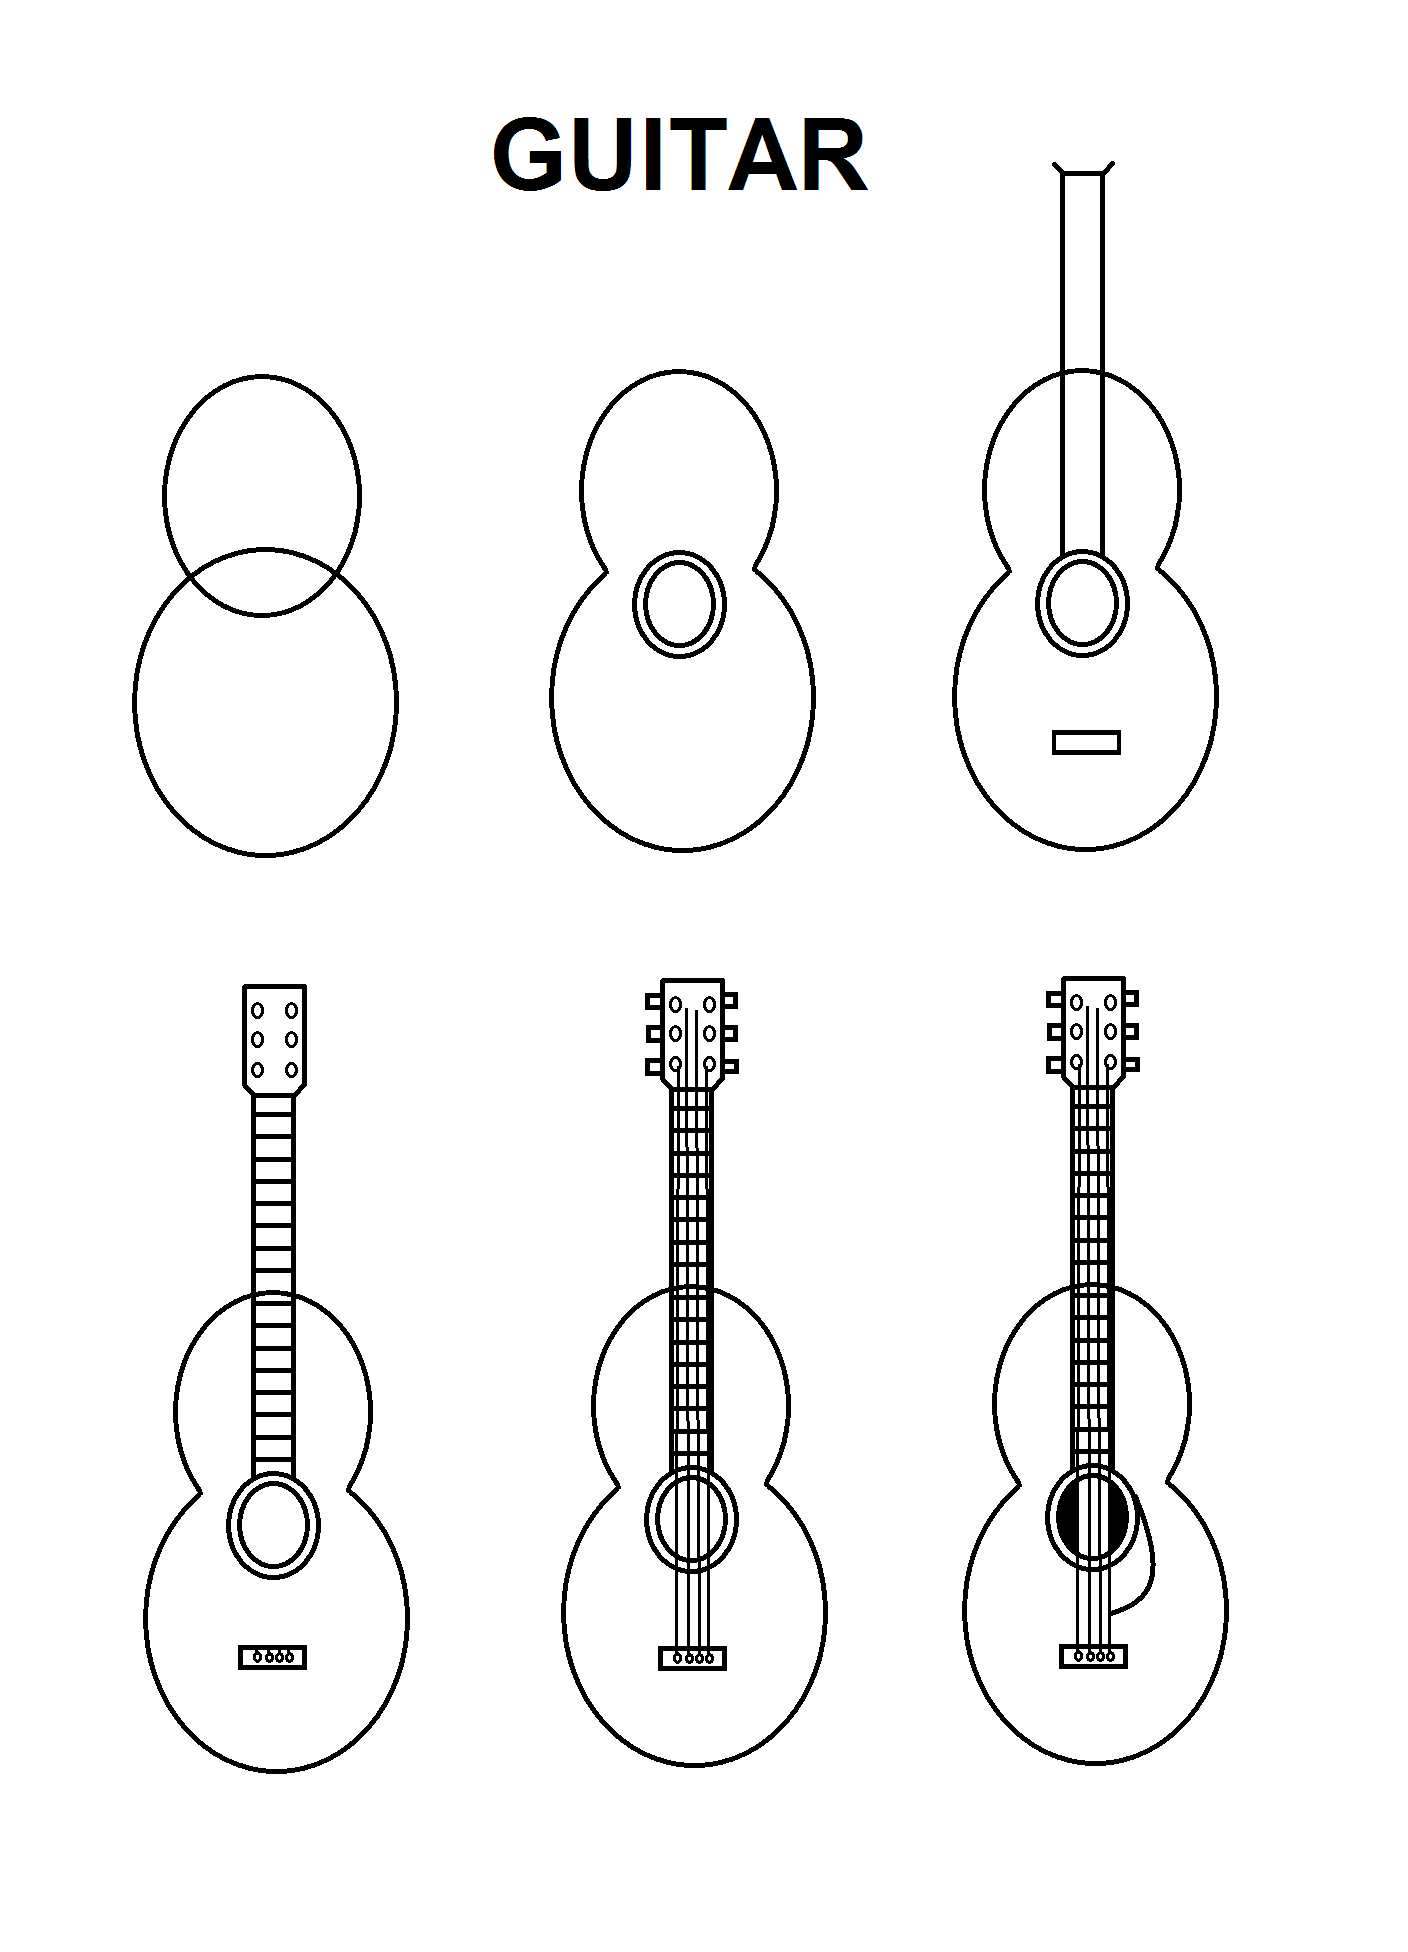 how to draw a electric guitar step by step guitar sketches drawing google search thread sketching how to electric step step by draw guitar a